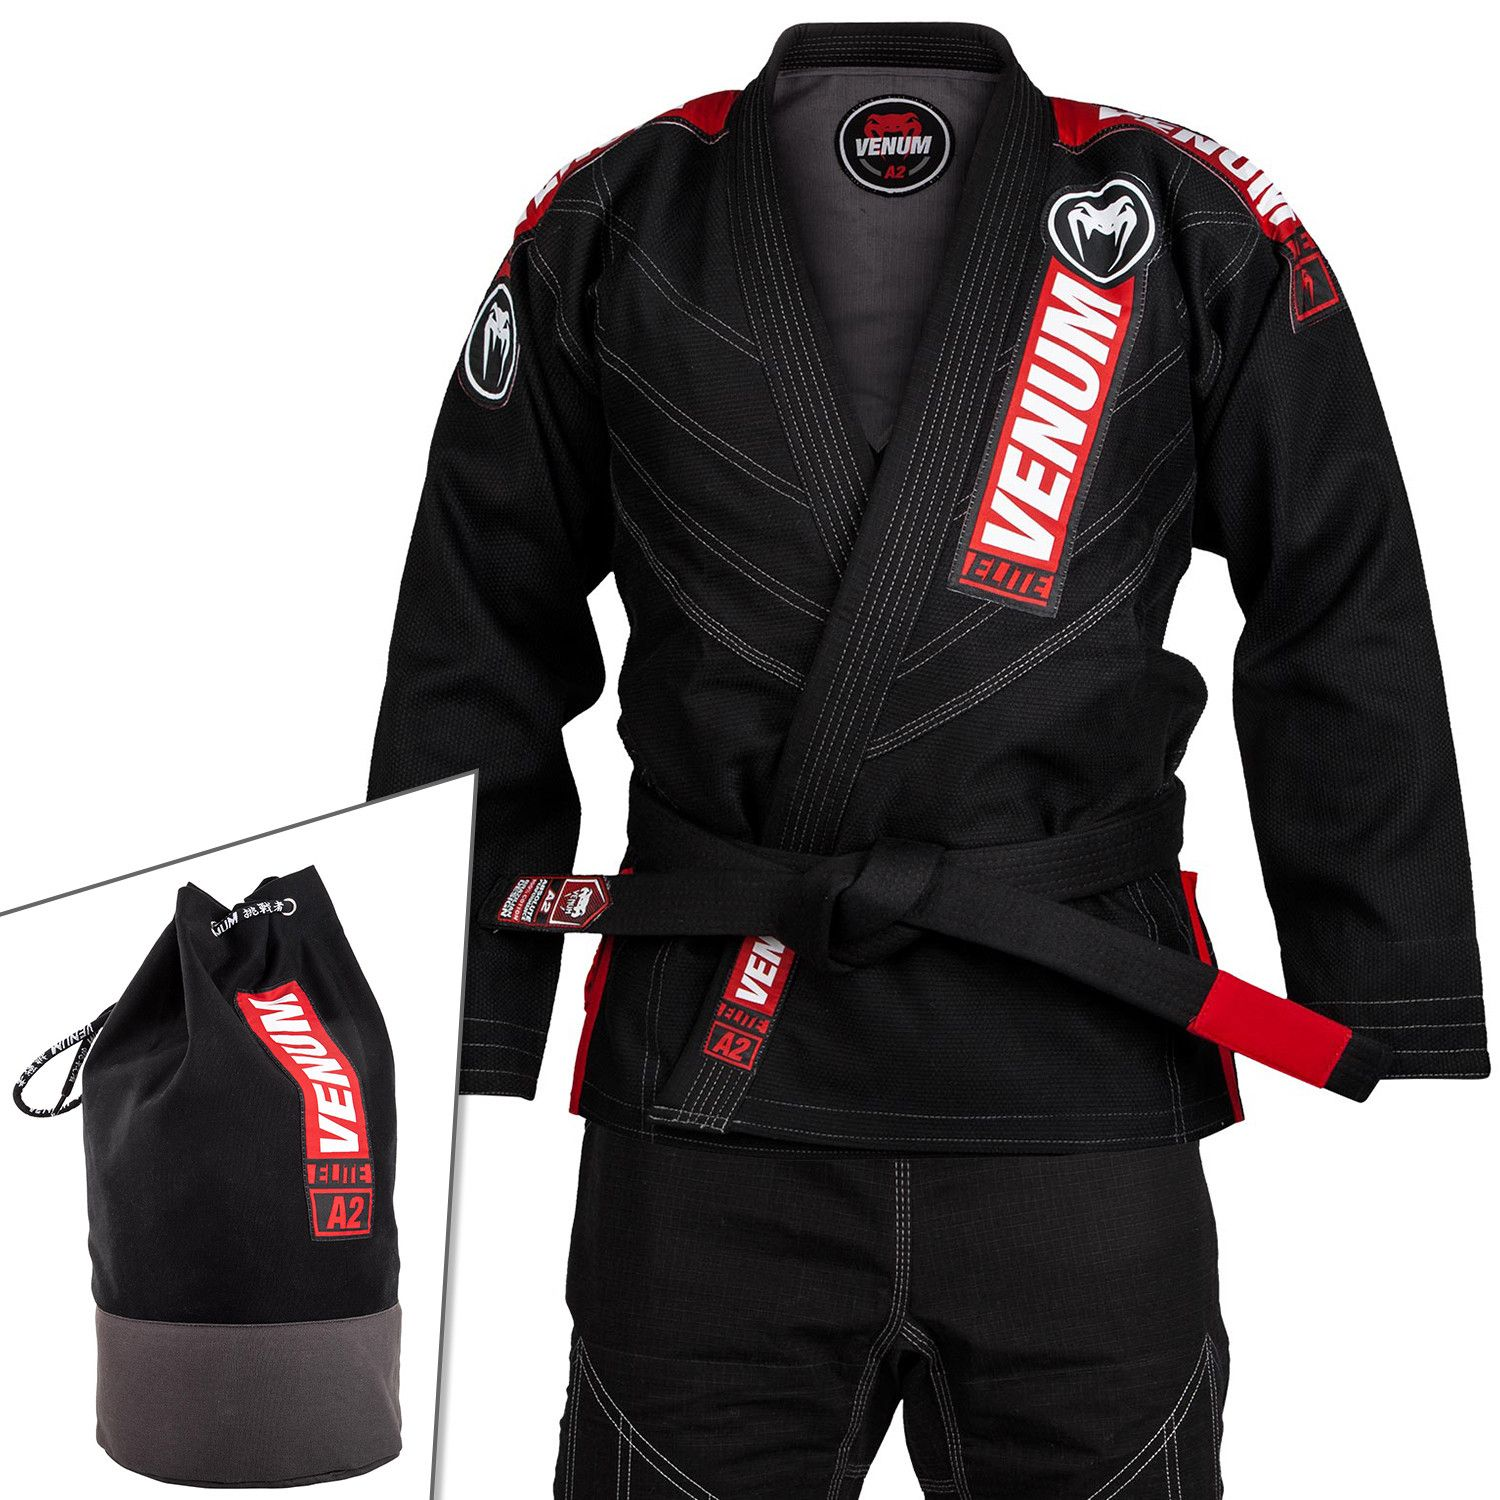 Venum Elite 2.0 BJJ Gi - (Bag Included) - Black - A0